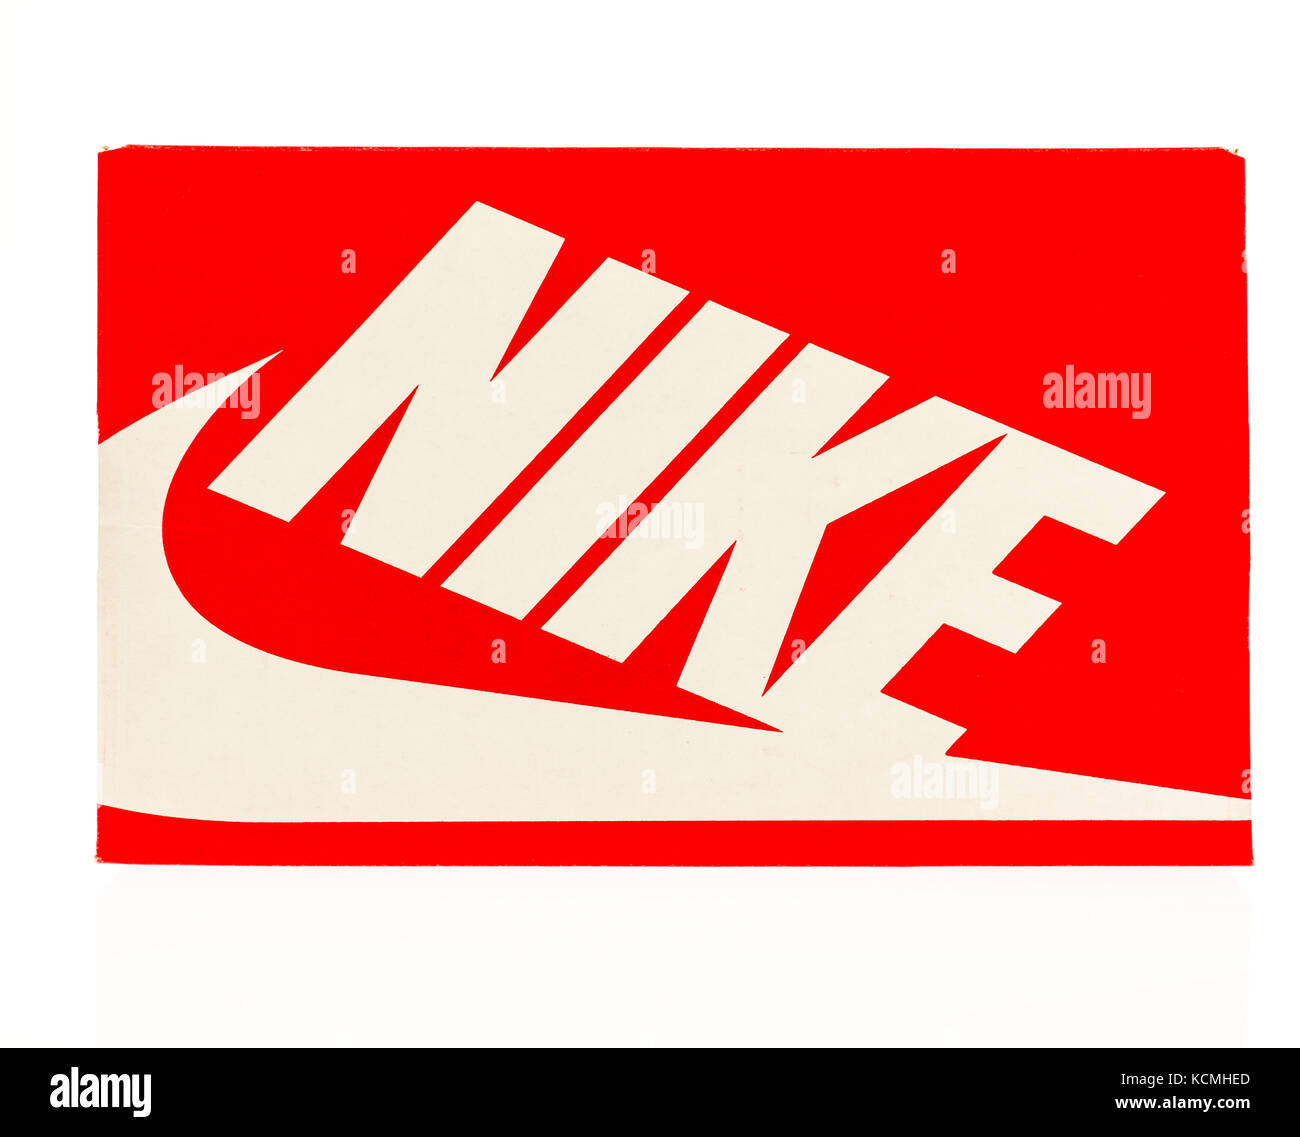 Nike Shoe Stock Photos & Nike Shoe Stock Images